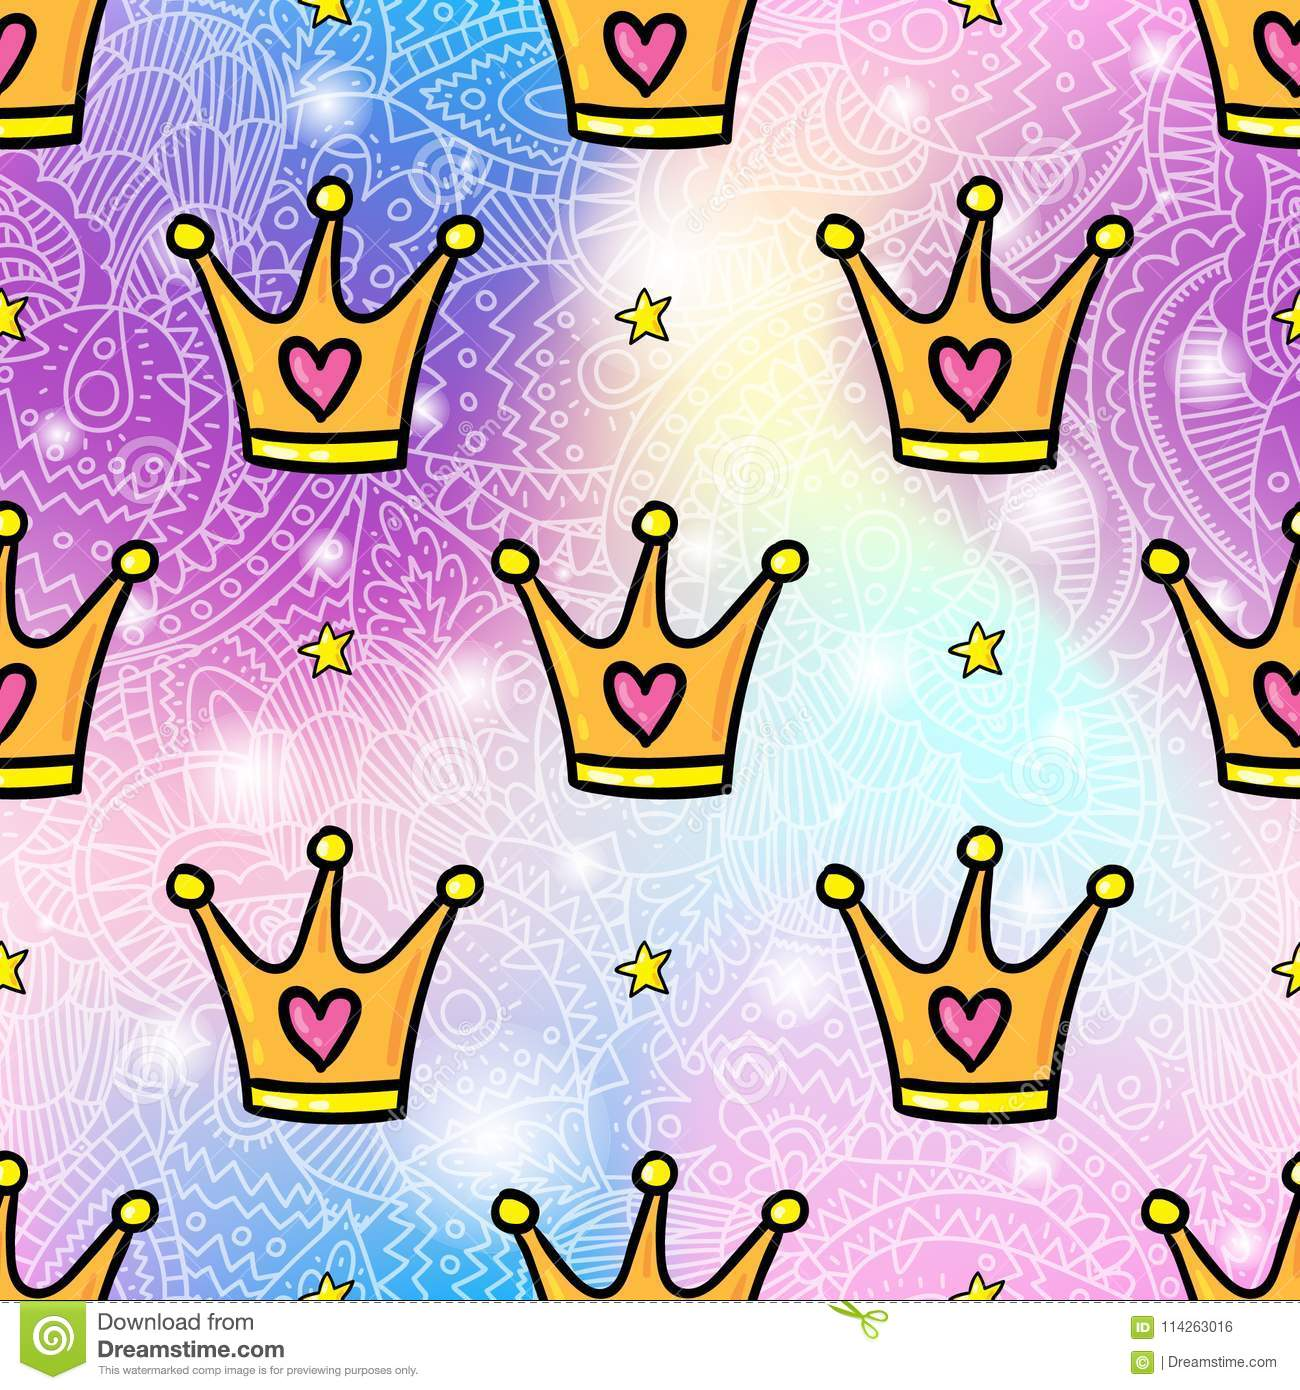 Cartoon Style Crowns Seamless Pattern Background Stock Vector Illustration Of Black Decorative 114263016 Find & download free graphic resources for crown cartoon. https www dreamstime com cartoon style crowns seamless pattern background vector seamless pattern design background trendy hipster gold crown cartoon image114263016